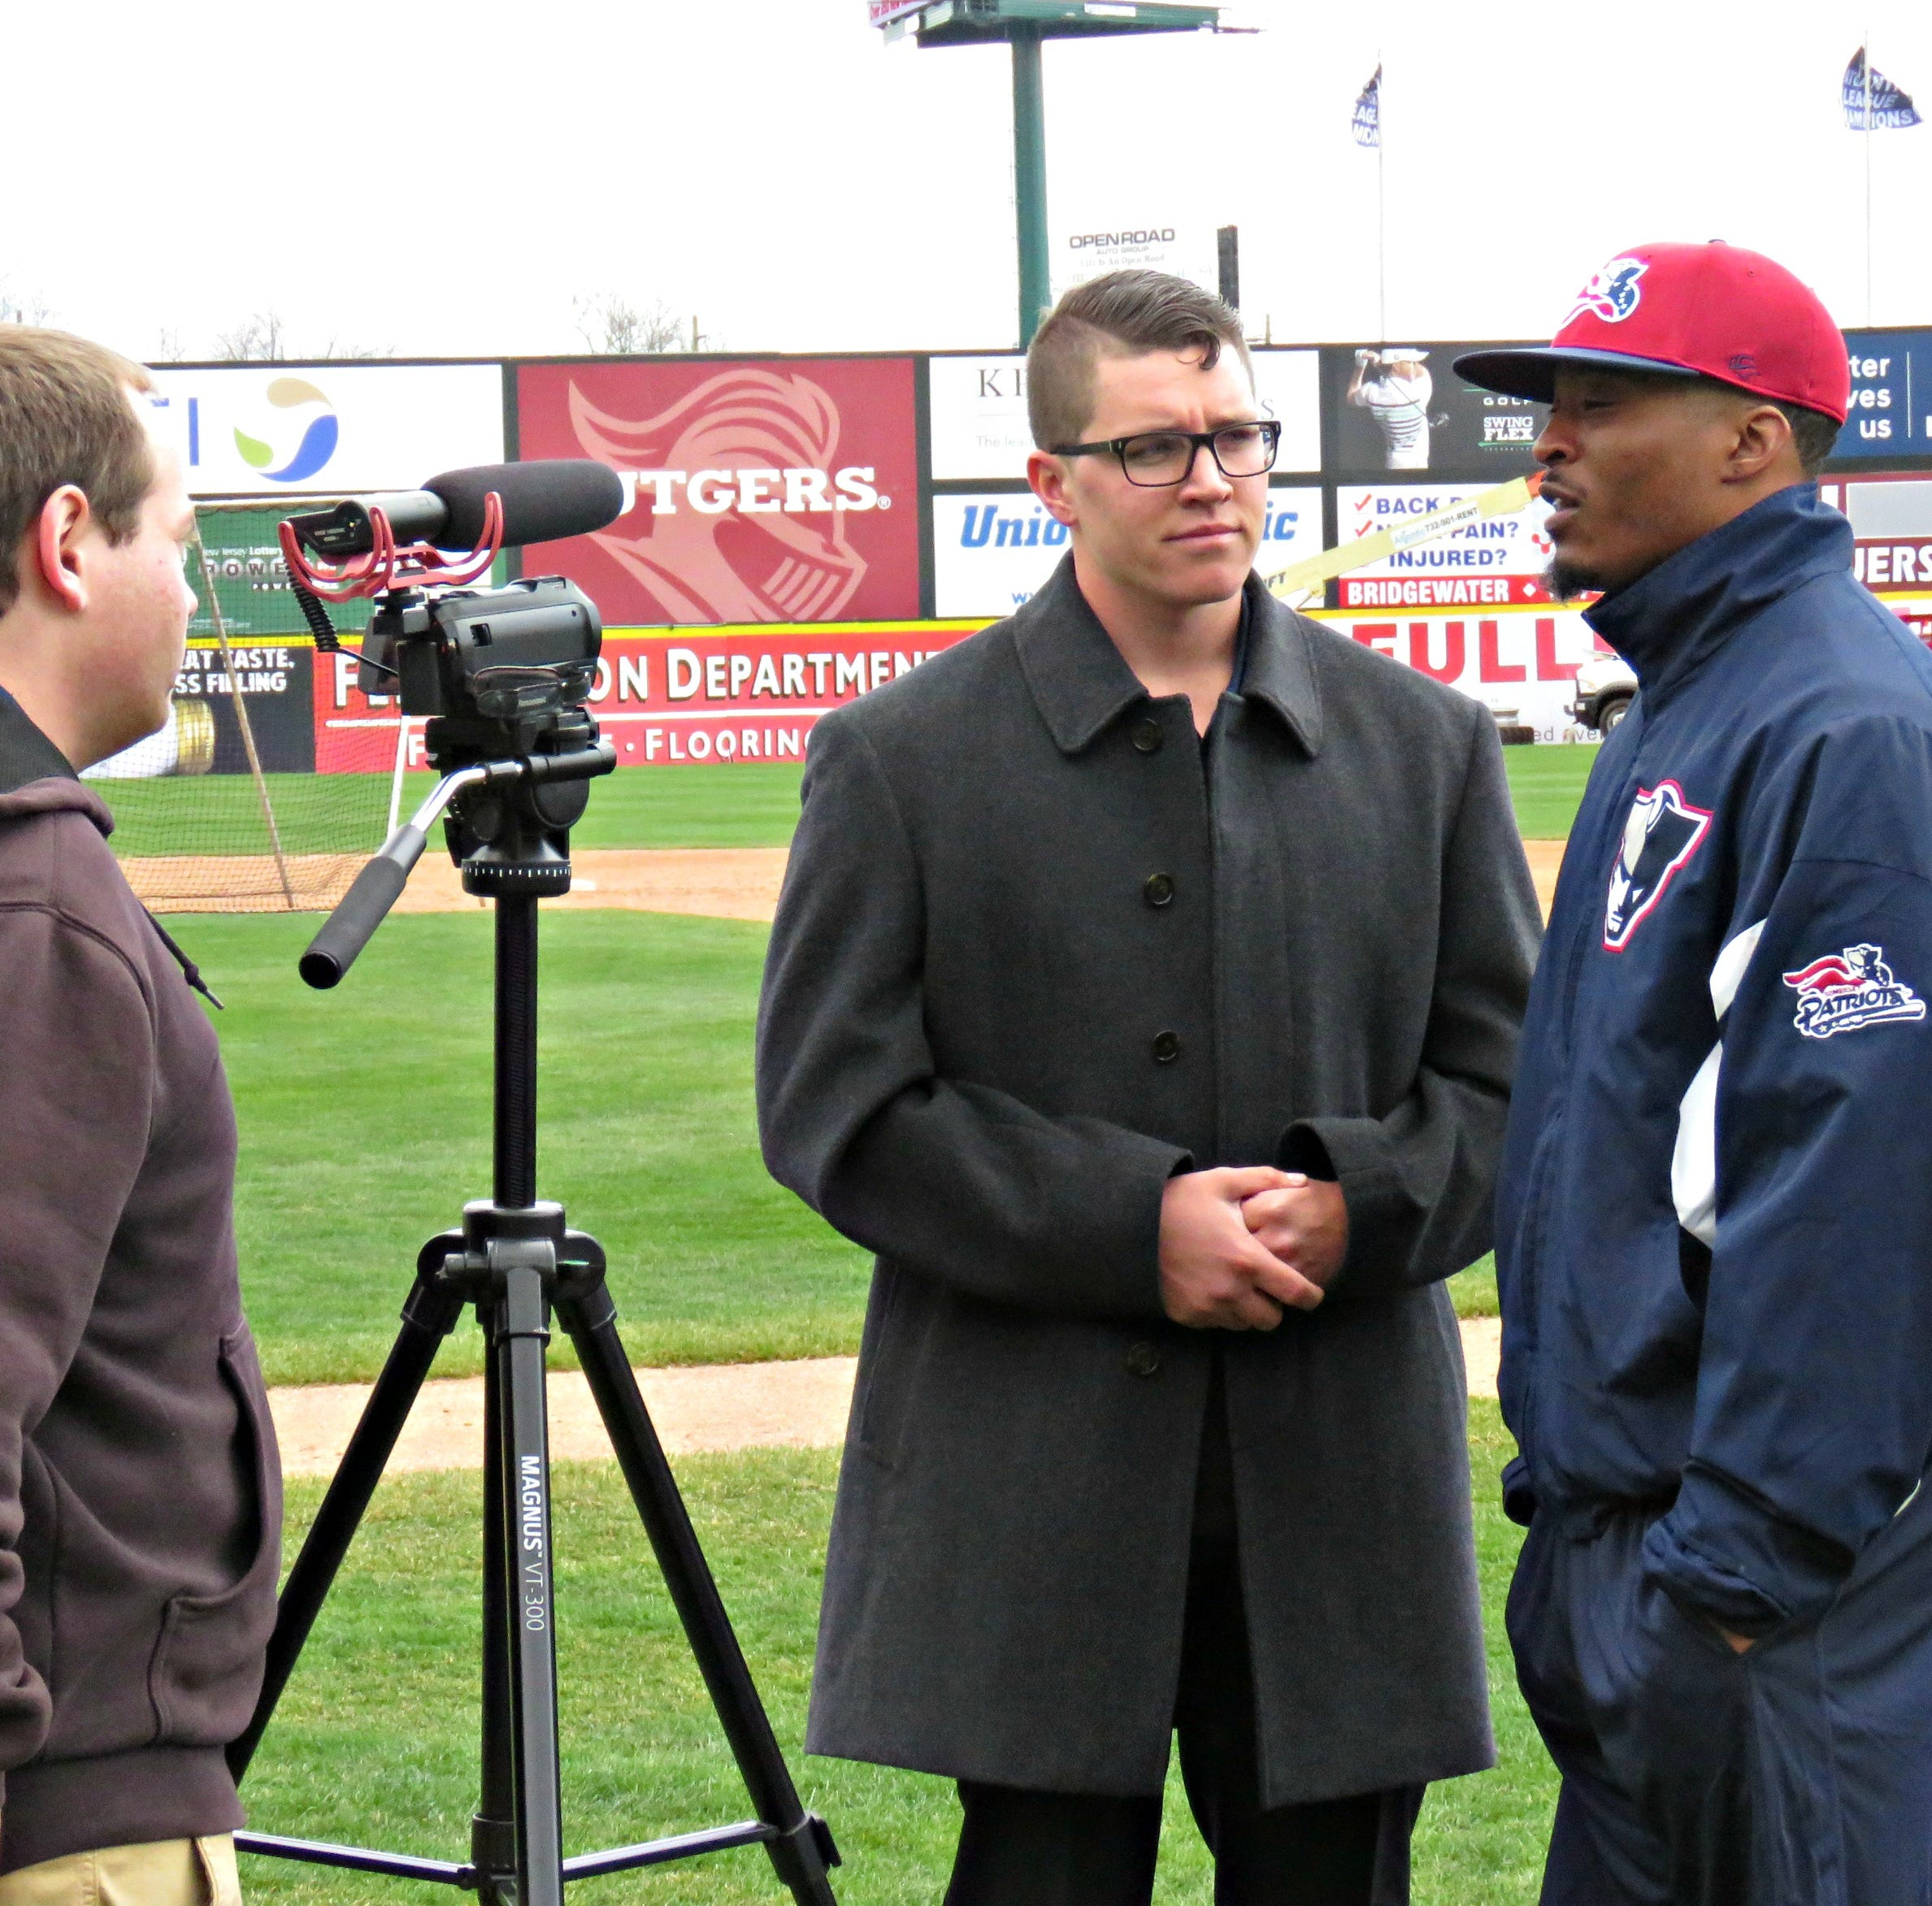 Somerset Patriots: Former South Plainfield pitcher Pat Boyle on the mic